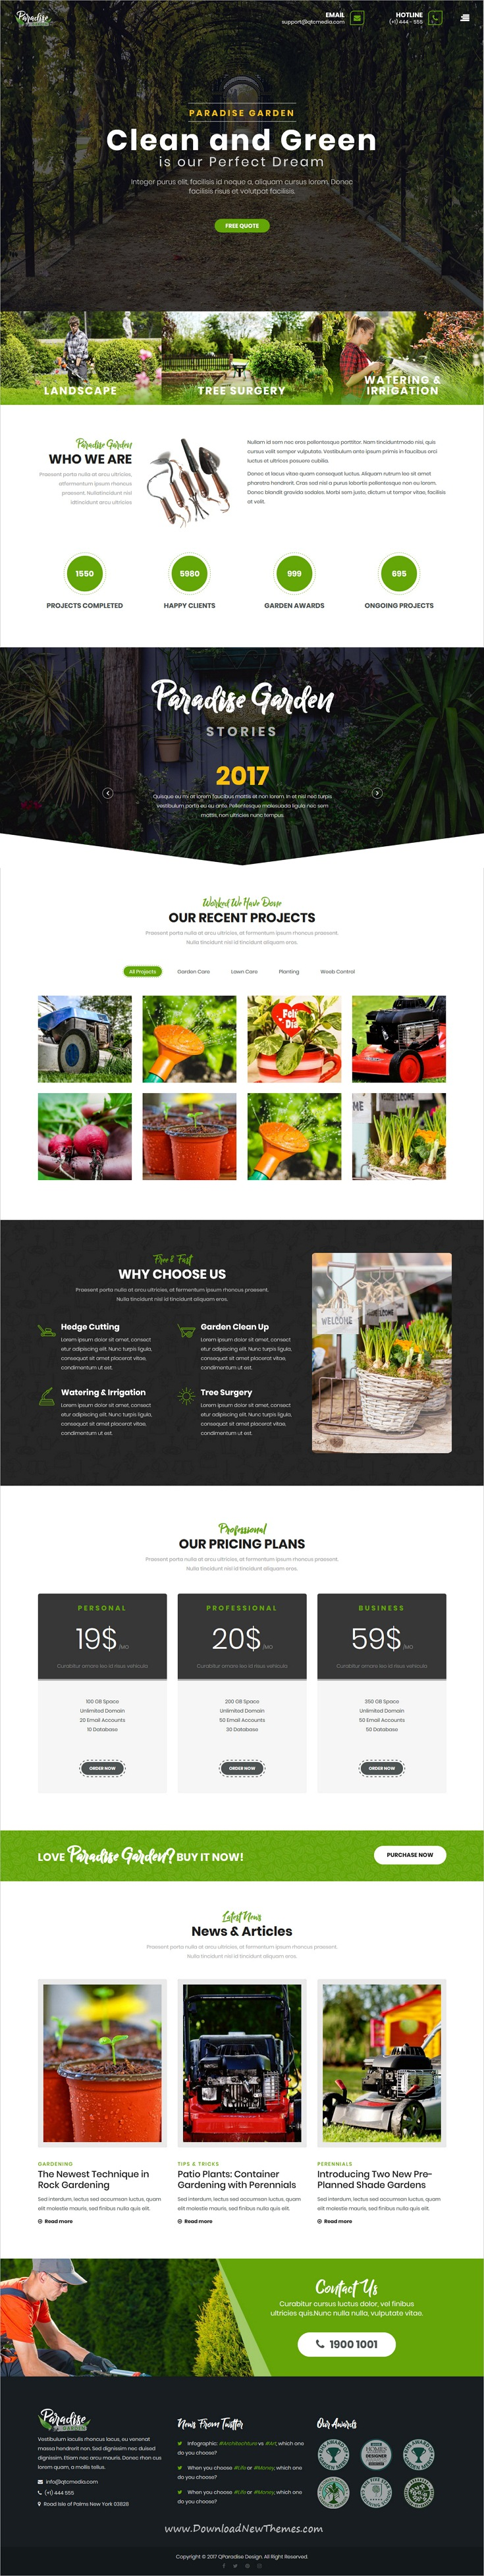 Qparadise Gardening And Landscaping Wordpress Theme Lawn Service Landscaping Company Landscape